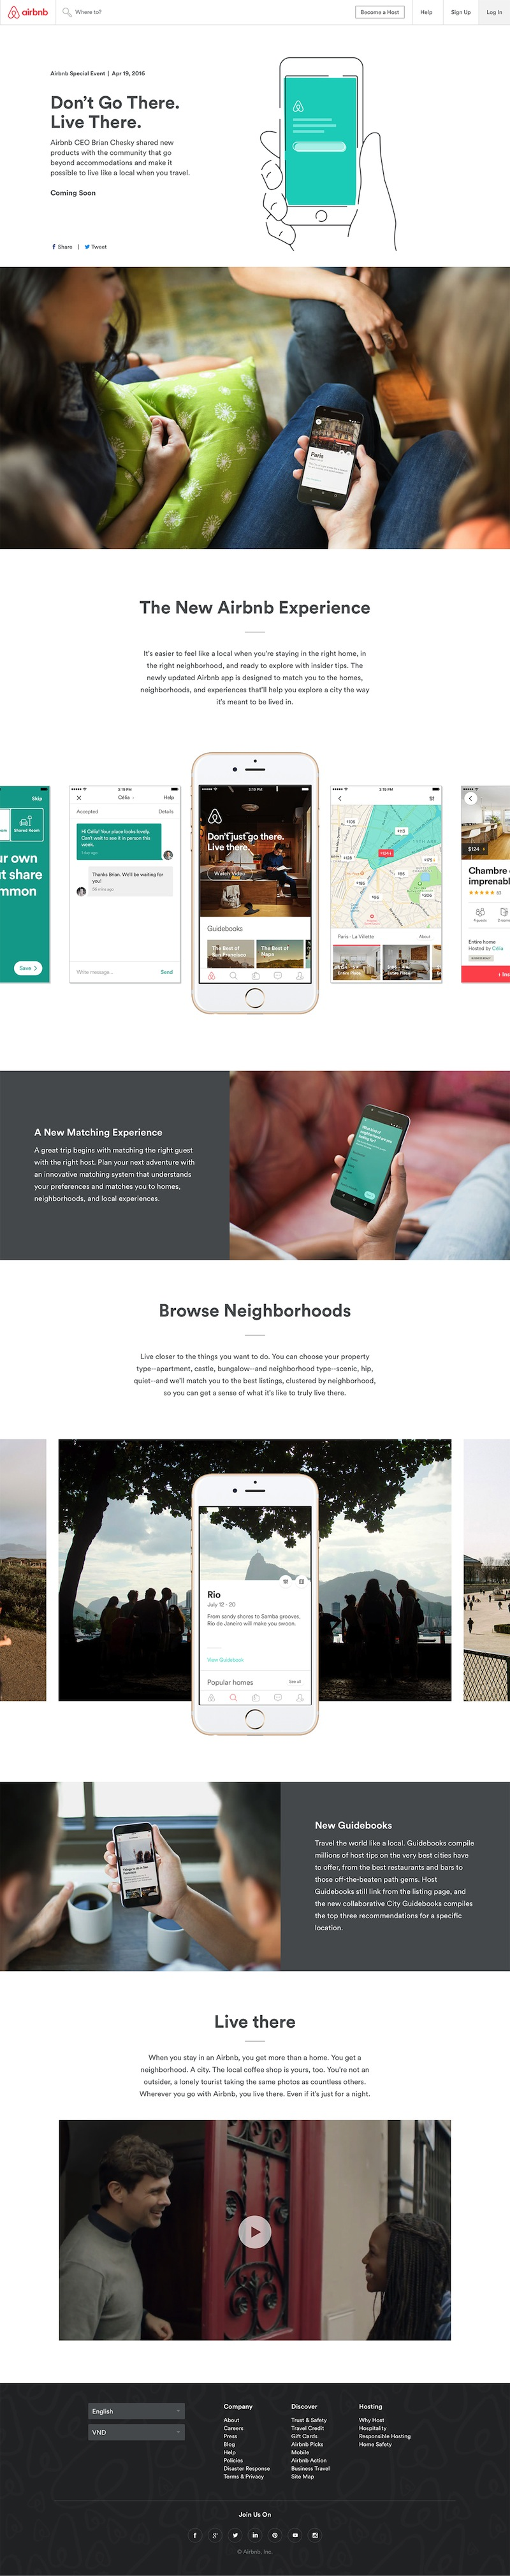 Airbnb - Live There